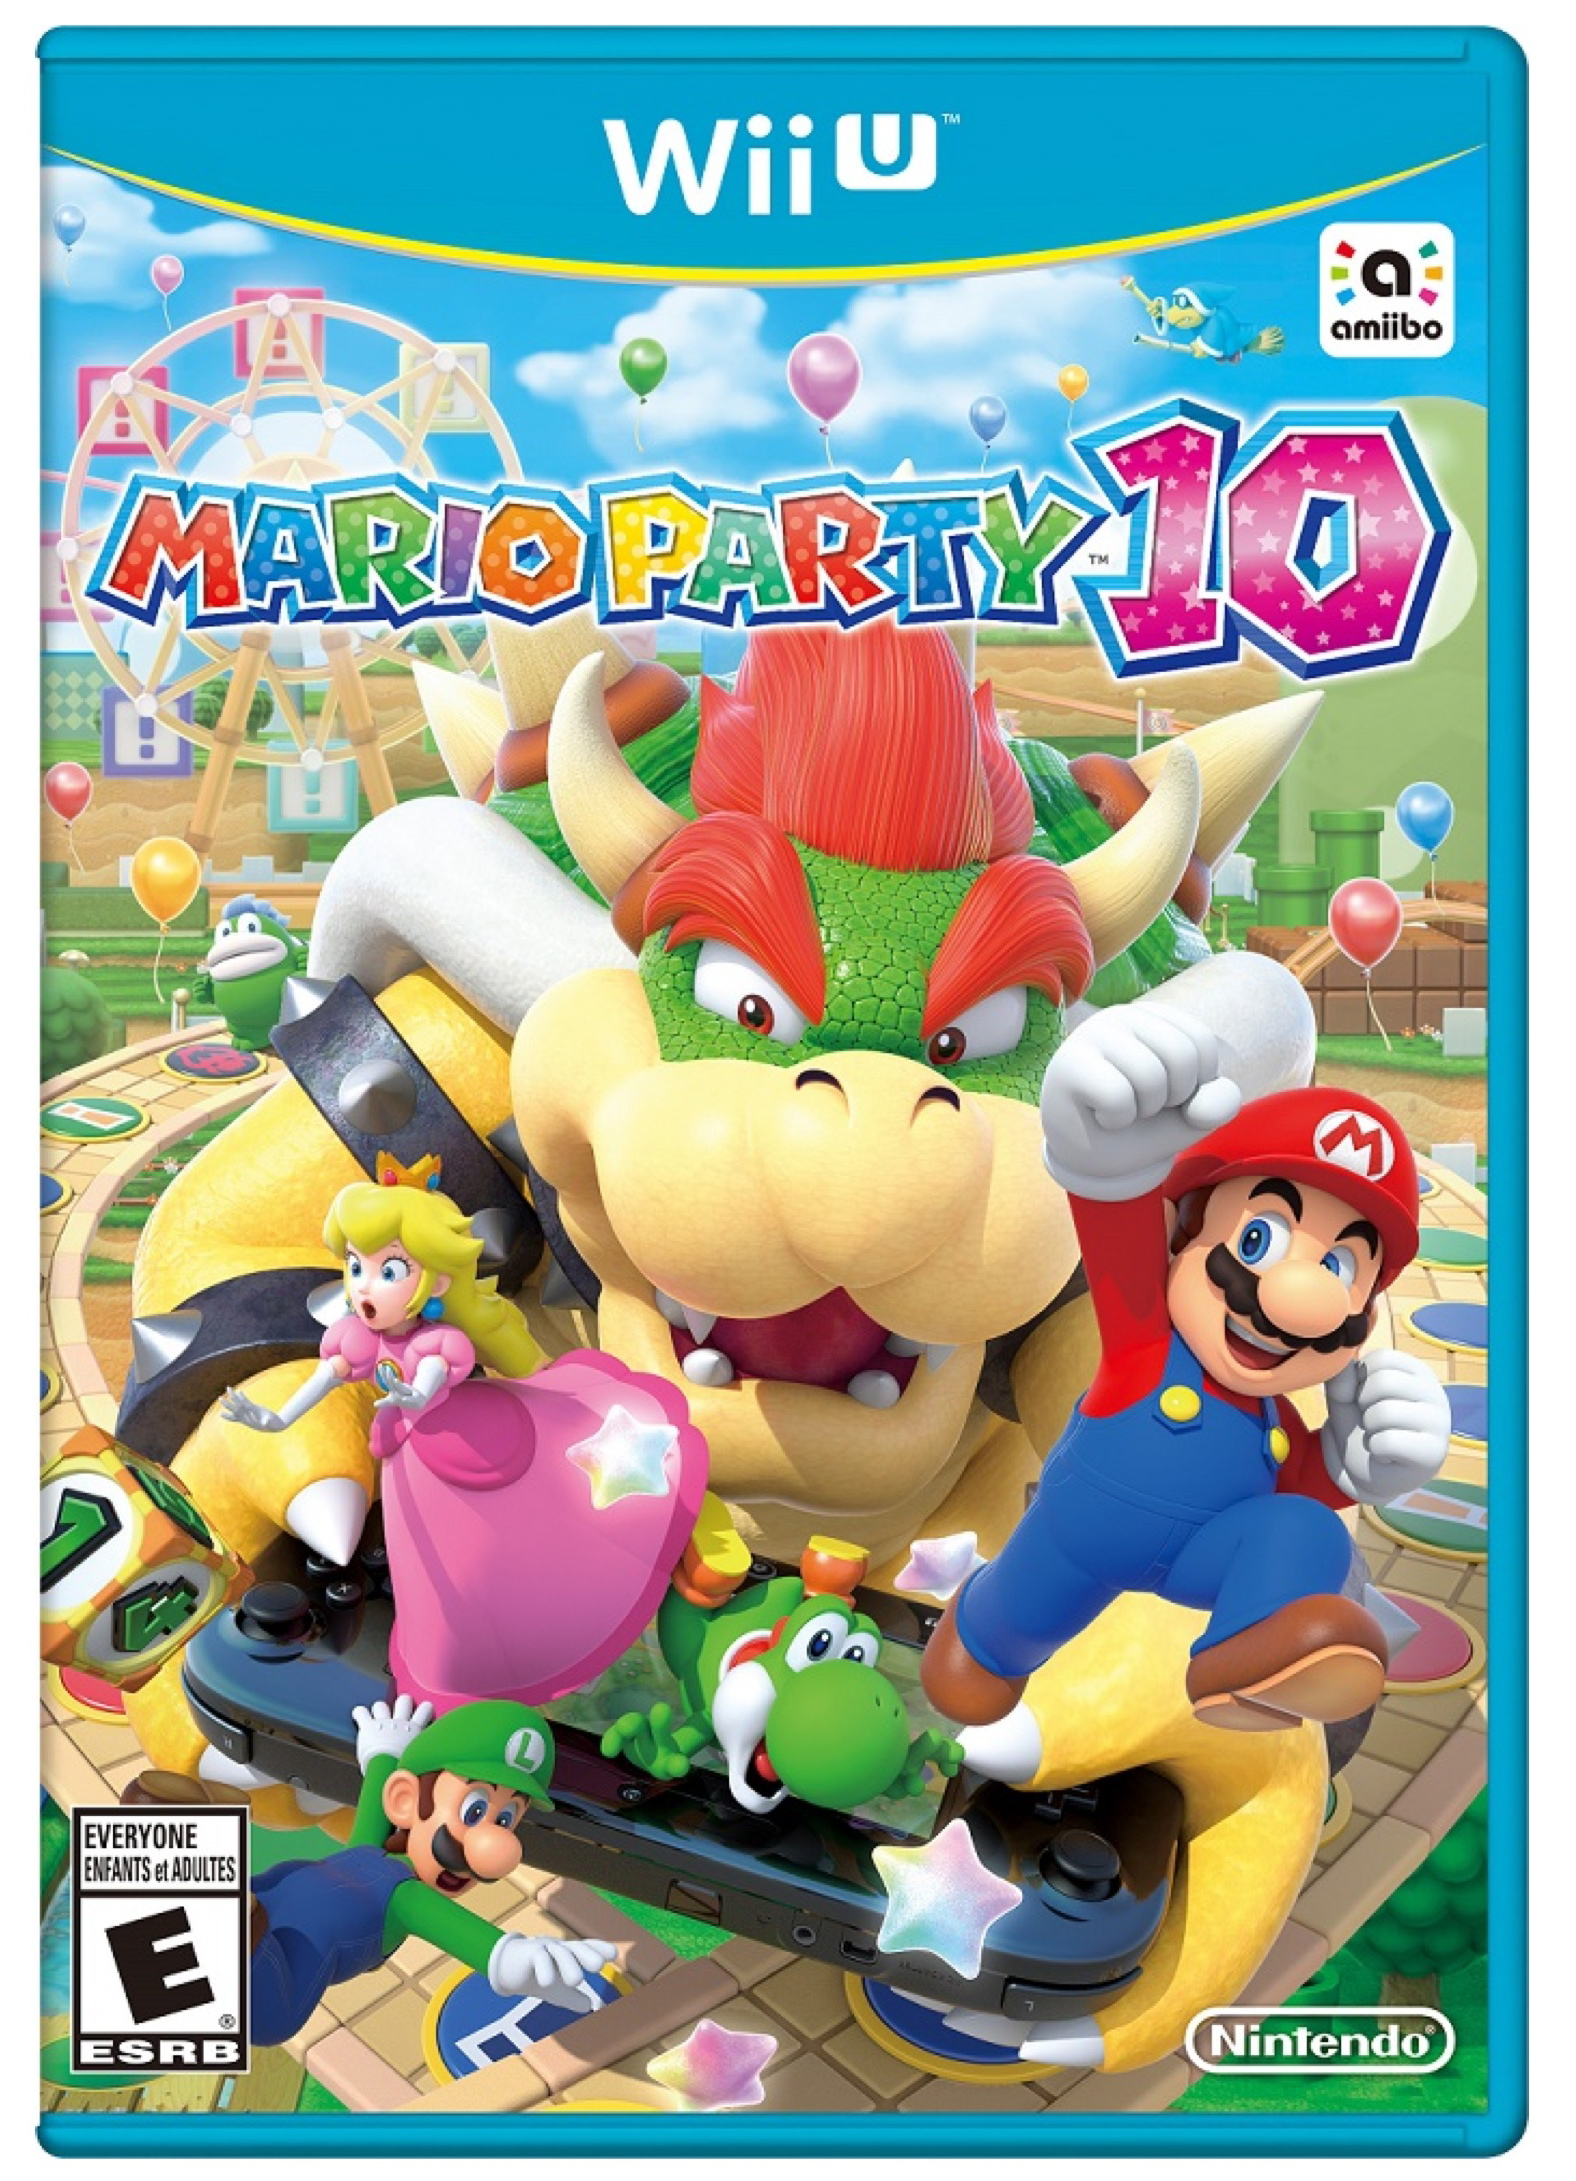 Why Your Kids Need To Check Out The New Mario Party 10